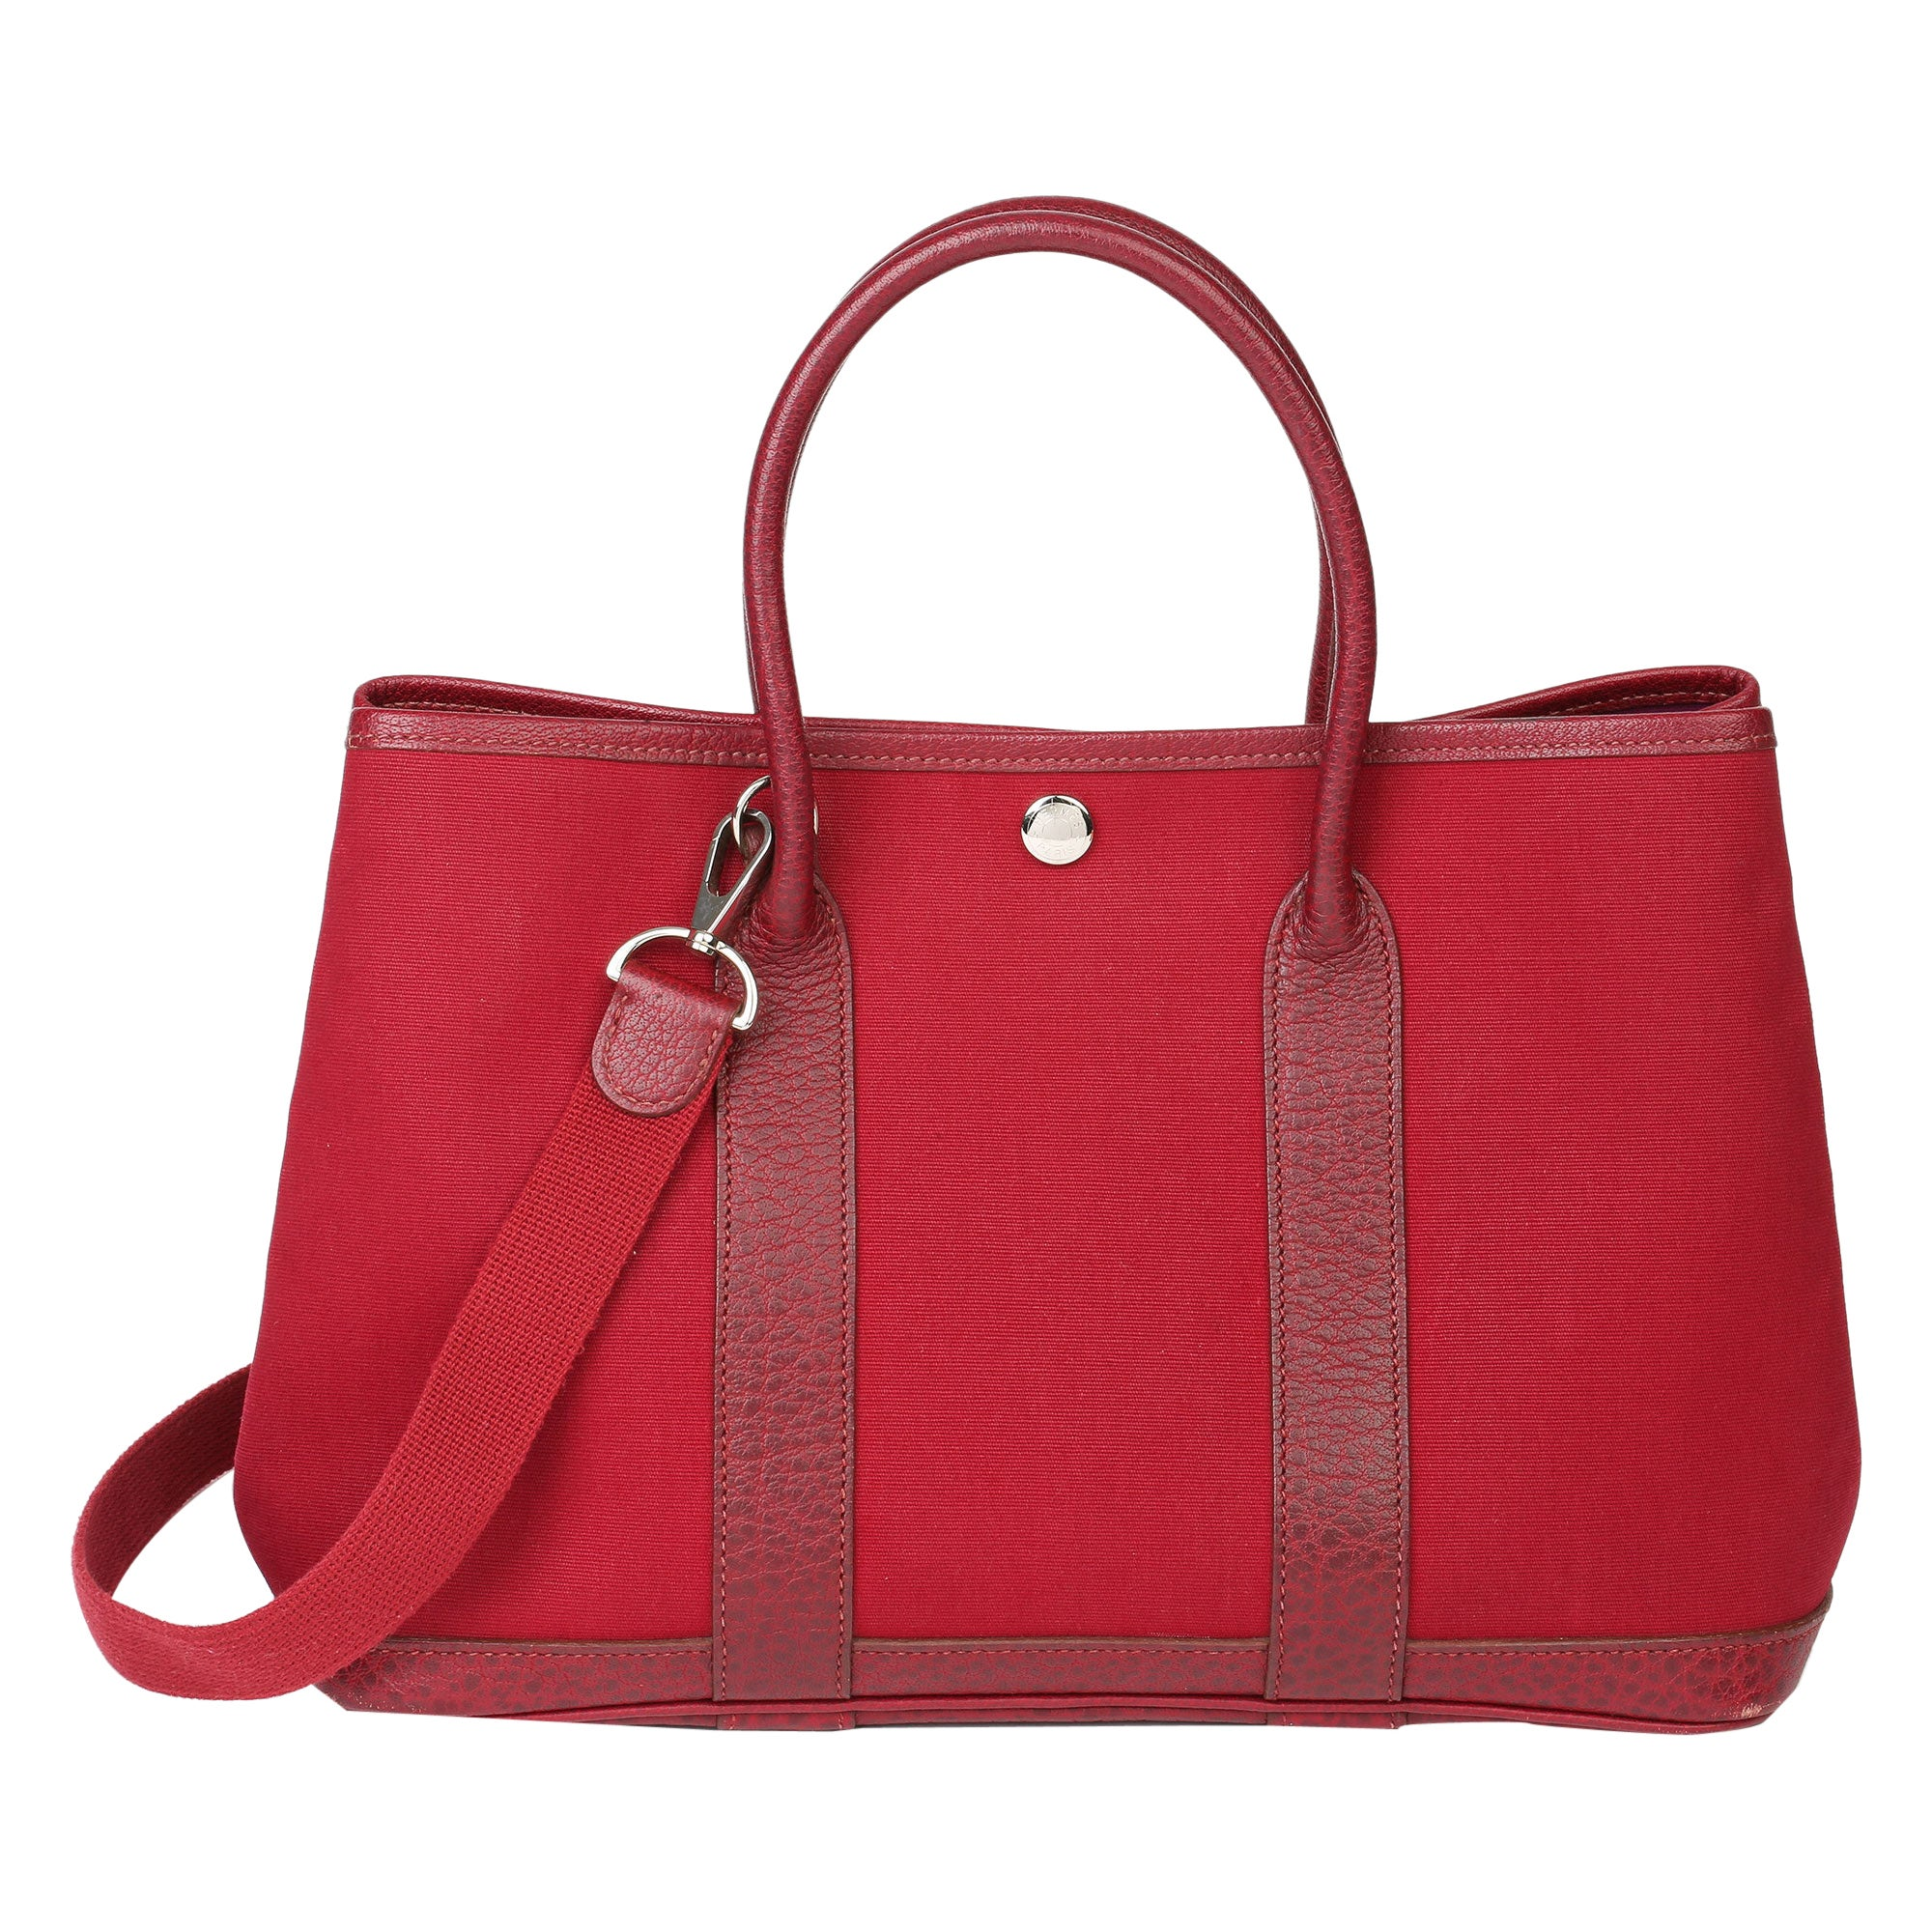 Hermès Rouge imperial Negonda Leather & Tosca Canvas Garden Party TPM